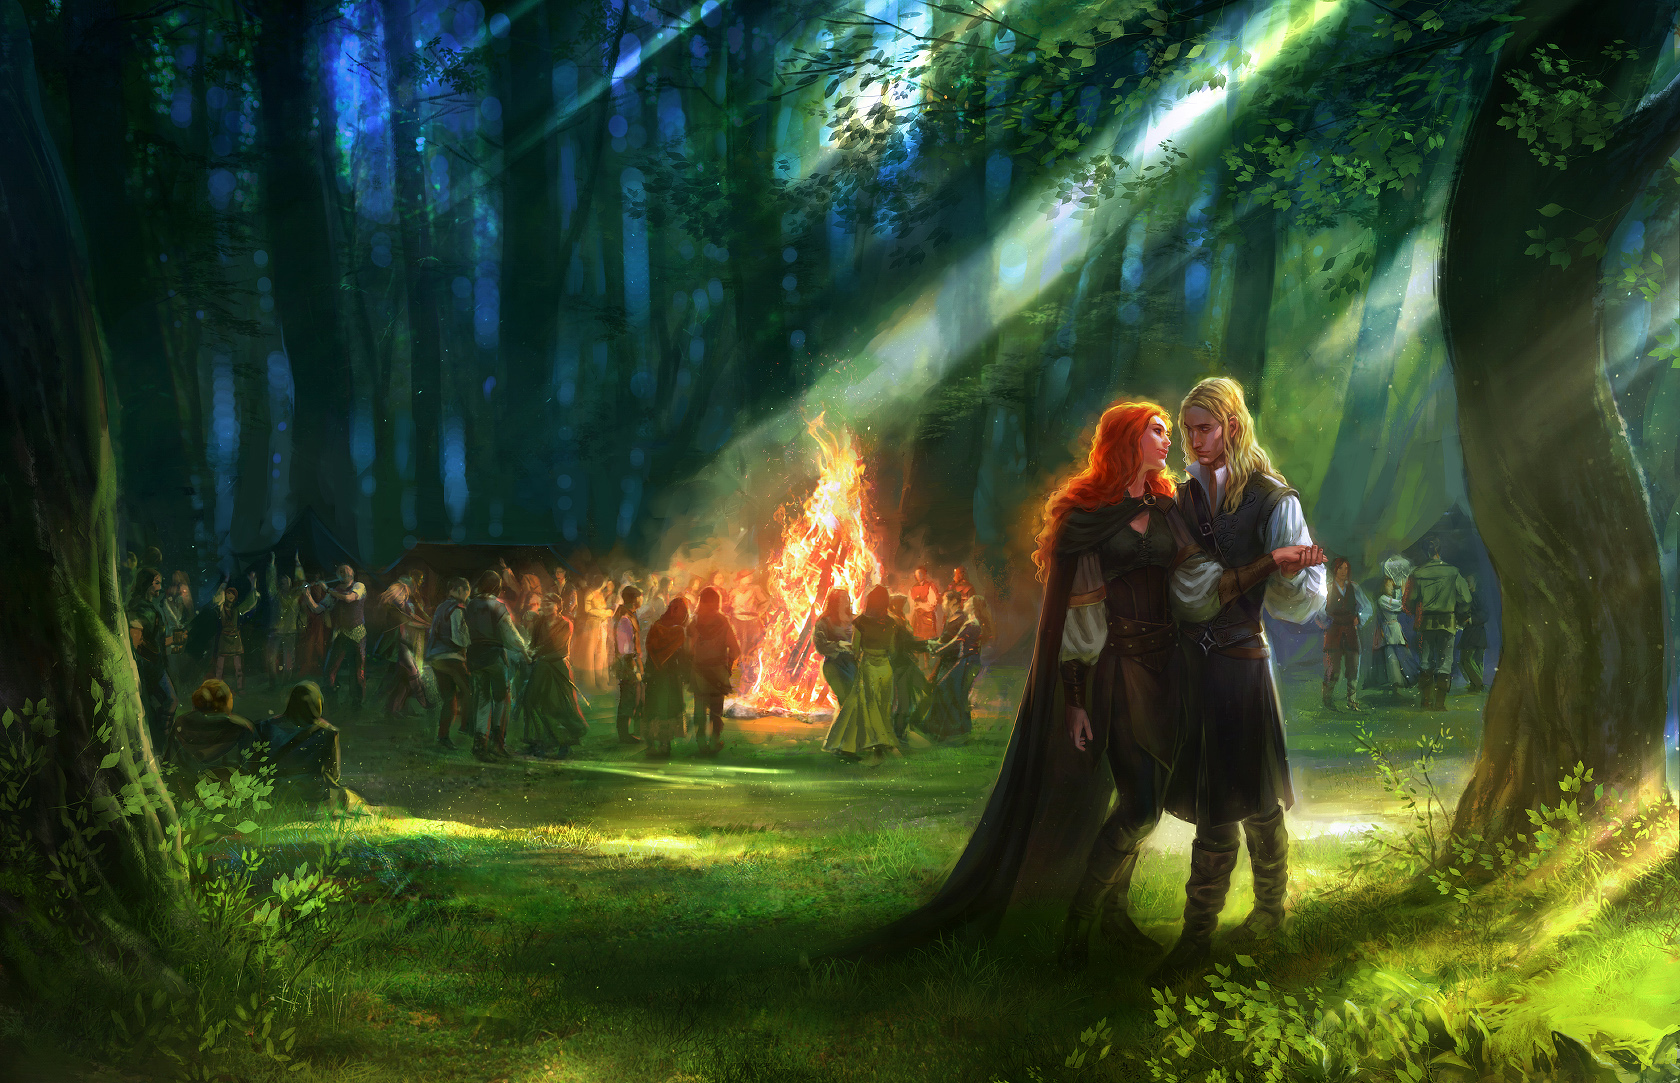 My Love O' The Greenwood by anndr